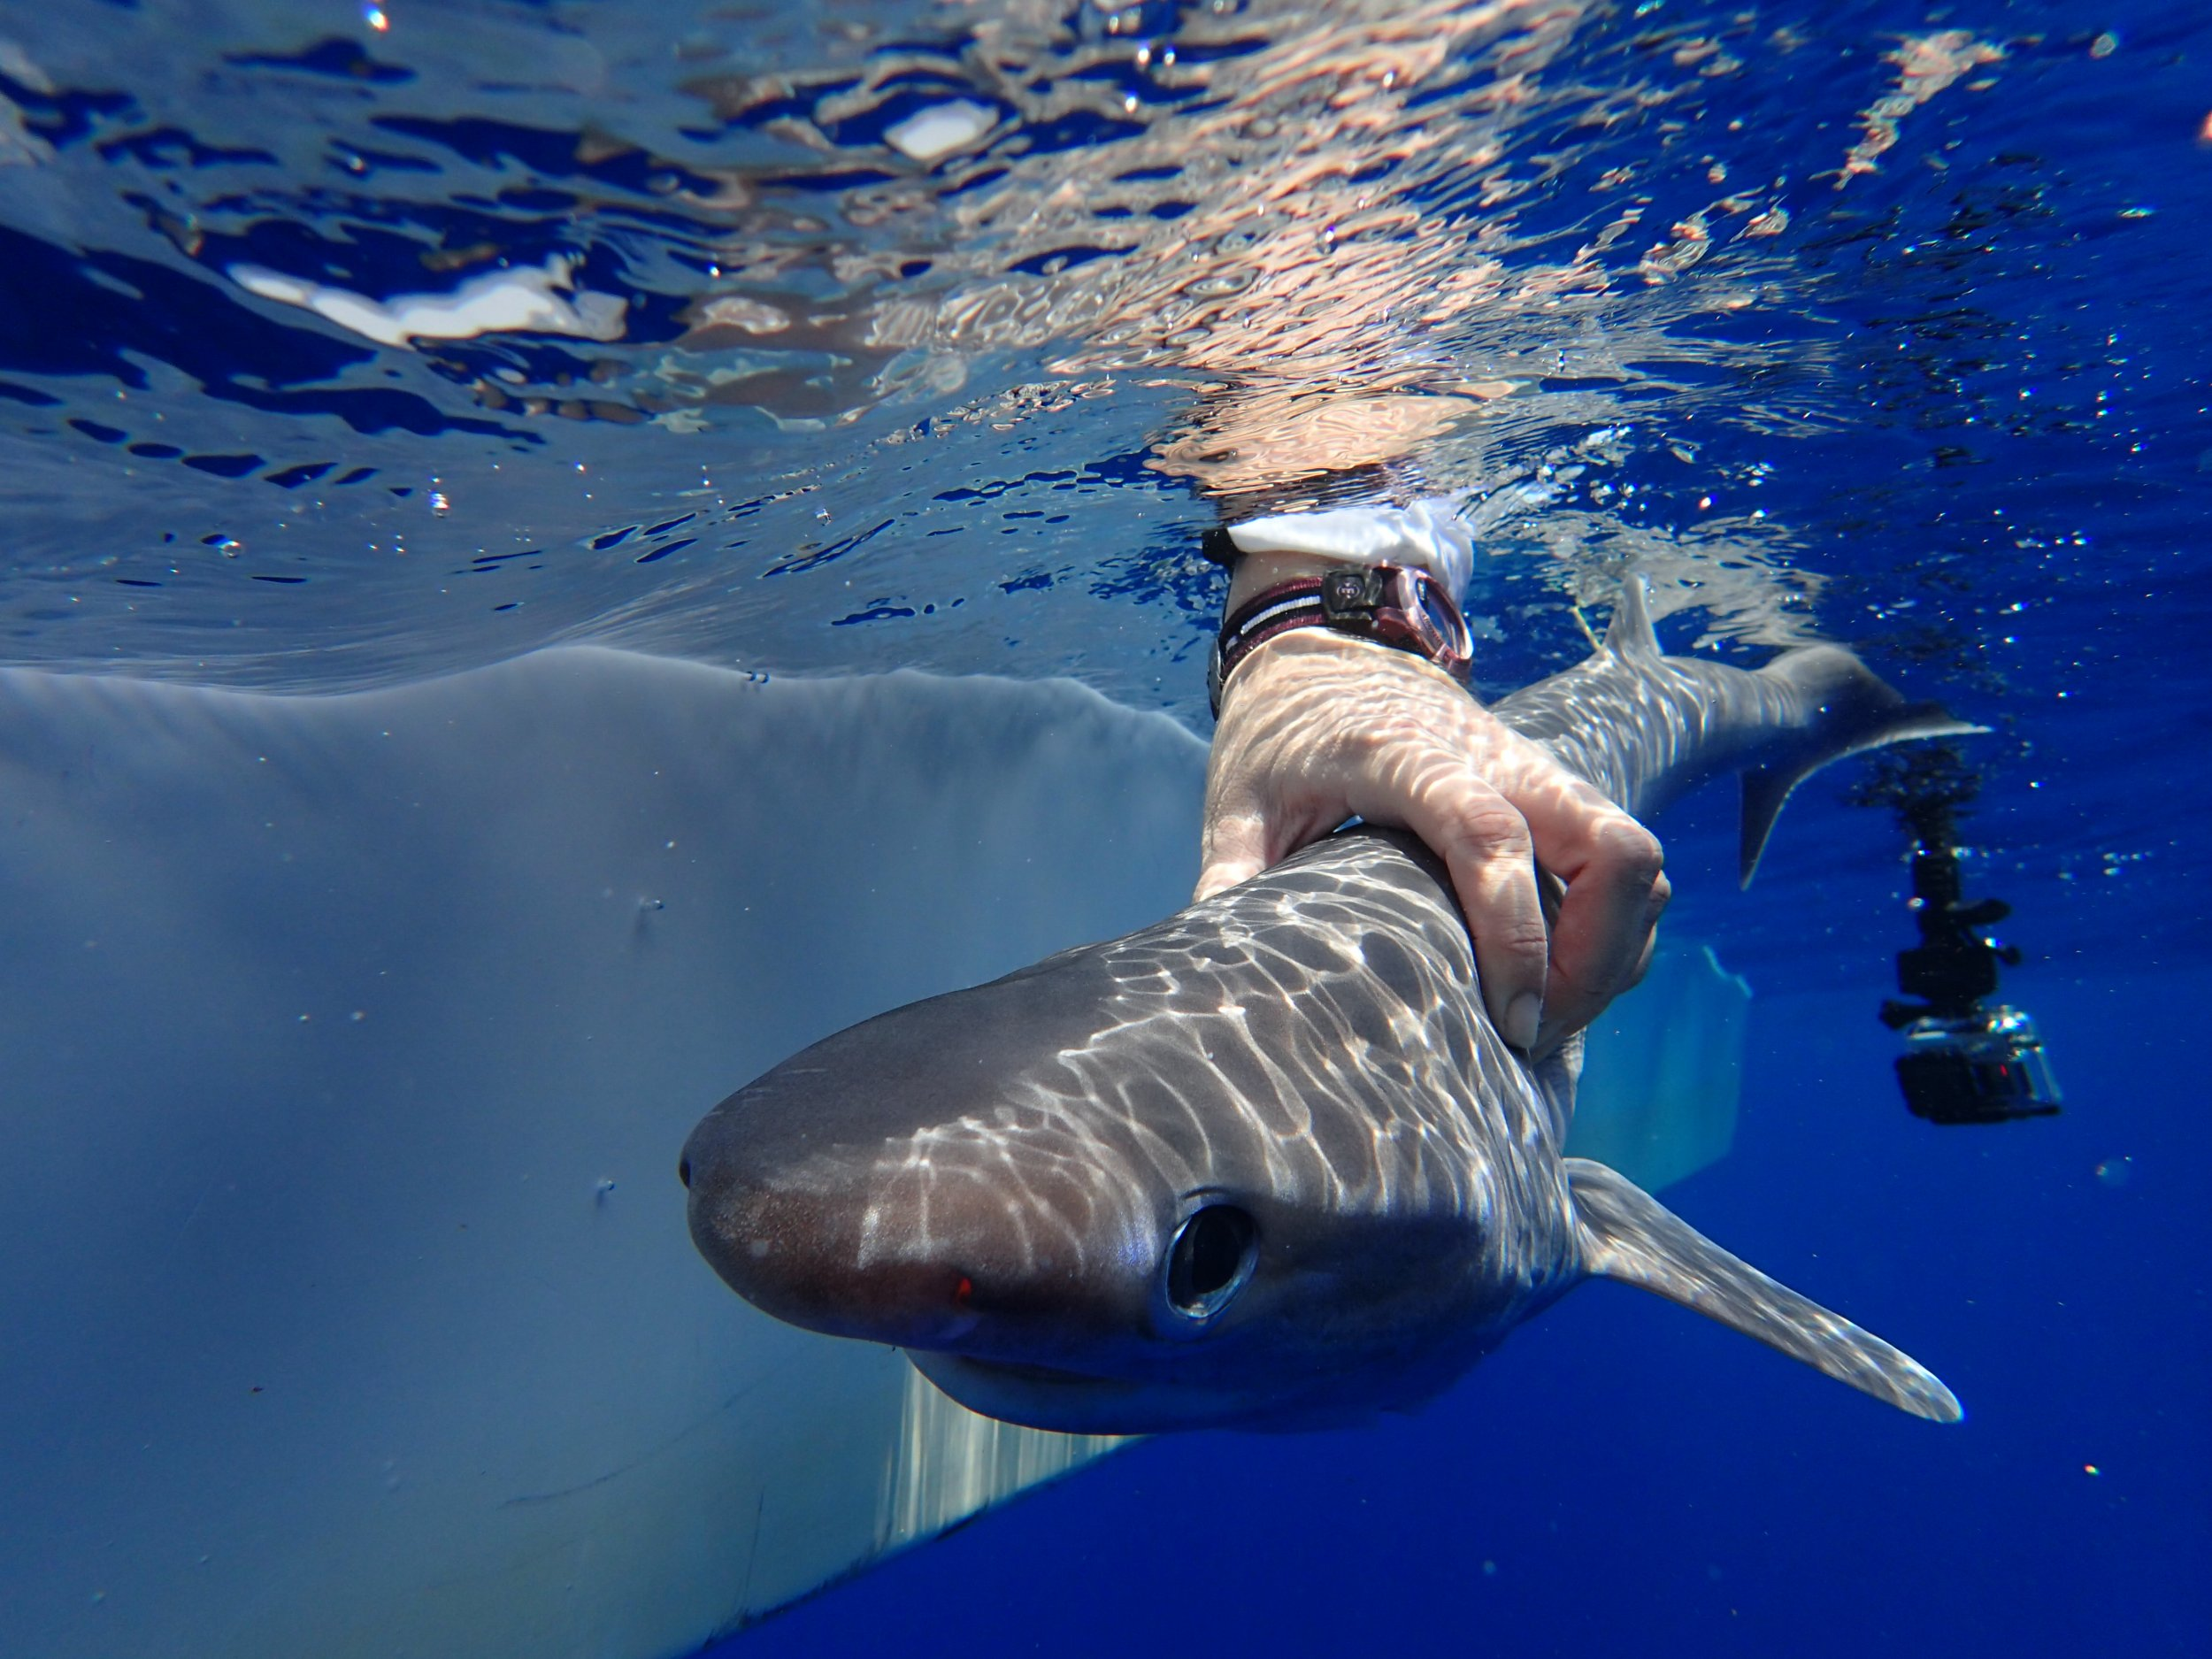 New Shark Species Discovered In The Atlantic Ocean Has Teeth Like Saws And Six Gills